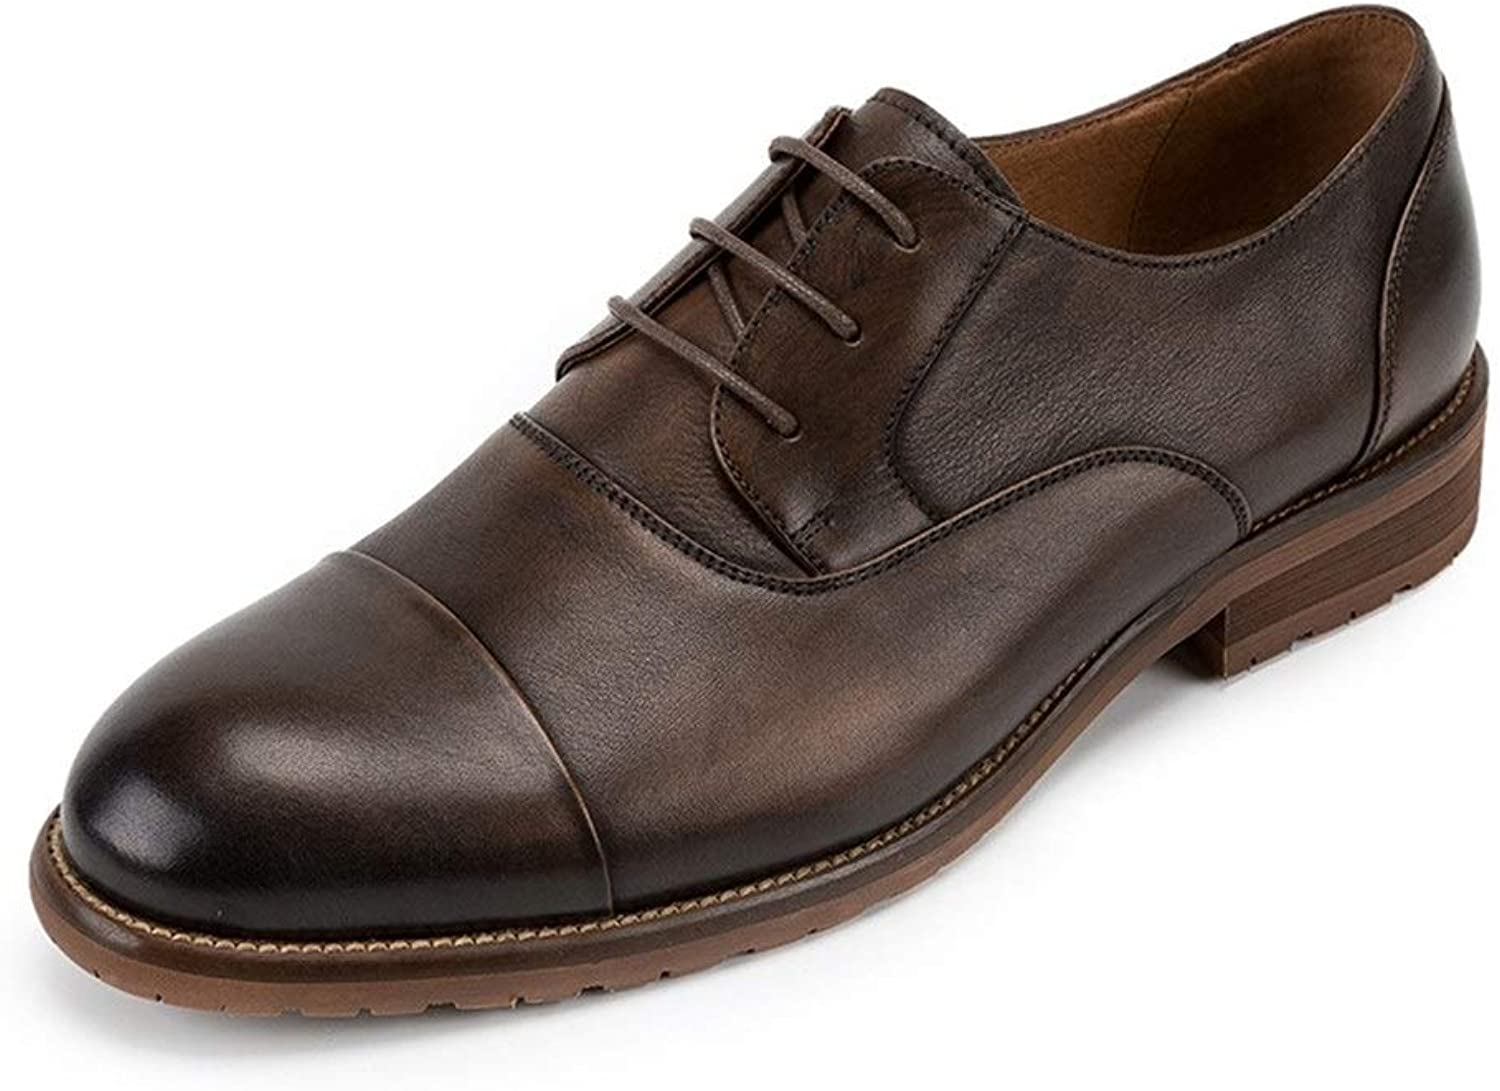 Men's England tie Low to Help Men's Leather shoes Handmade Summer Toe Cap Leather Casual shoes (color   Coffee, Size   8.5UK)